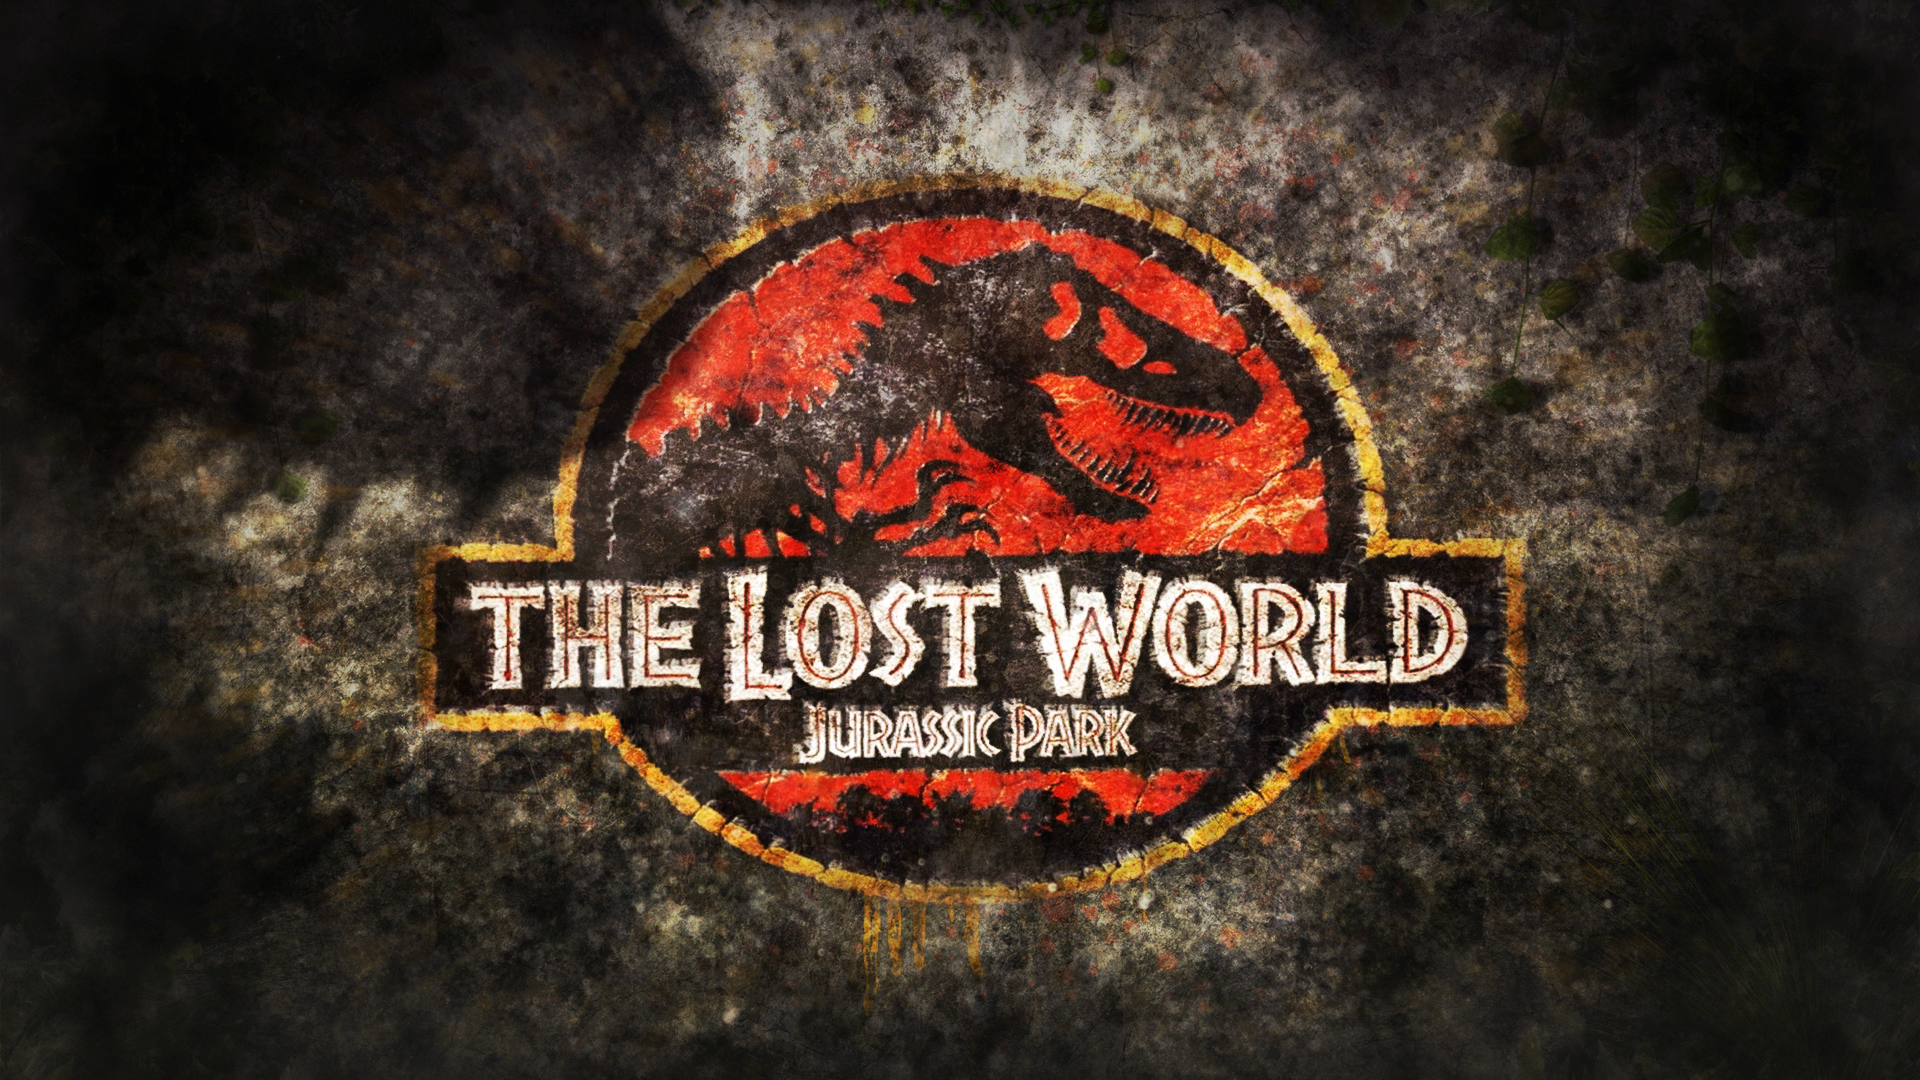 the lost world jurassic park essay In the opening chapters of the lost world, we learn that jurassic park has been destroyed, that the story of as in jurassic park, there are lots of scenes of dinosaurs romping about a scenic island and lots of scenes of man's technology succumbing to the raw force of nature.